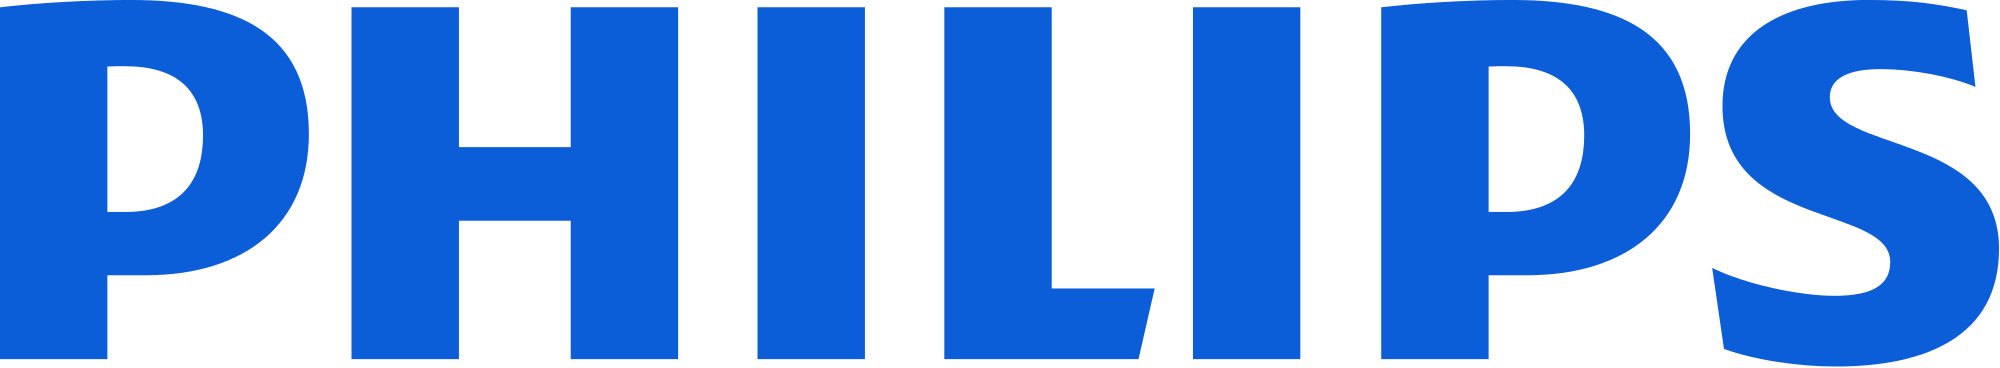 Philips_logo_new.svg